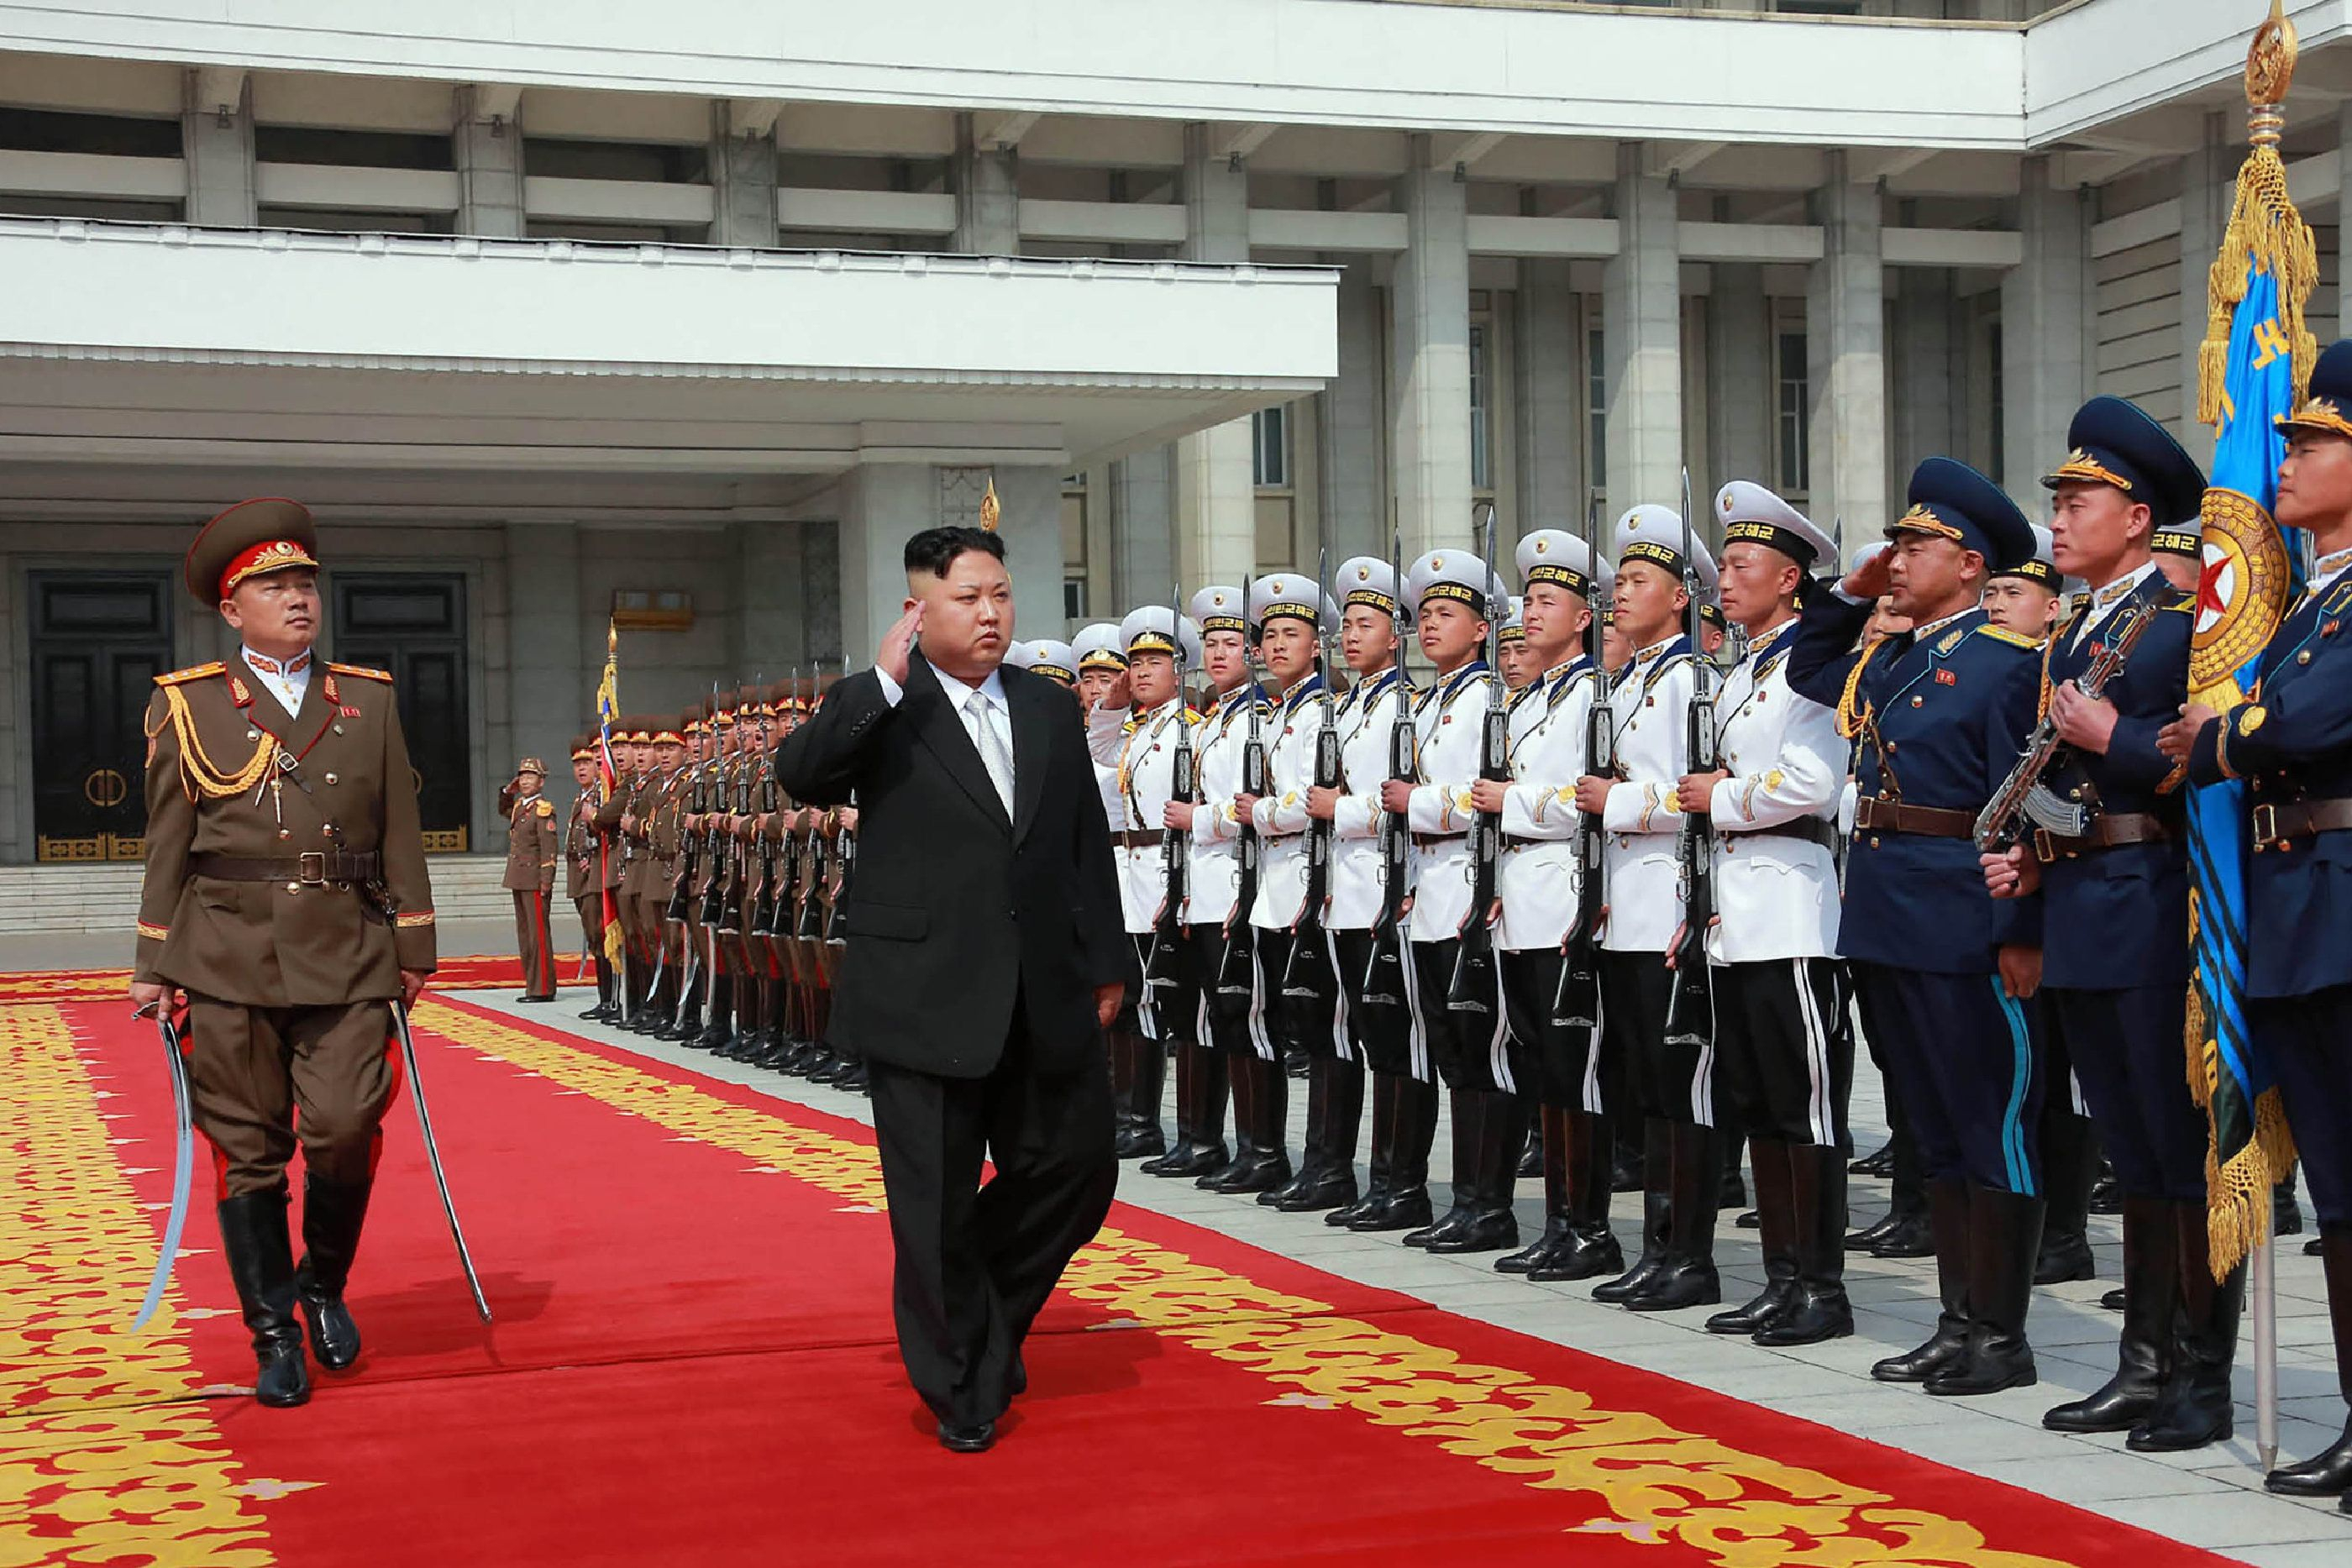 Kim Jong Un arrives for a military parade in Pyongyang marking the 105th anniversary of the birth of late leader Kim Il